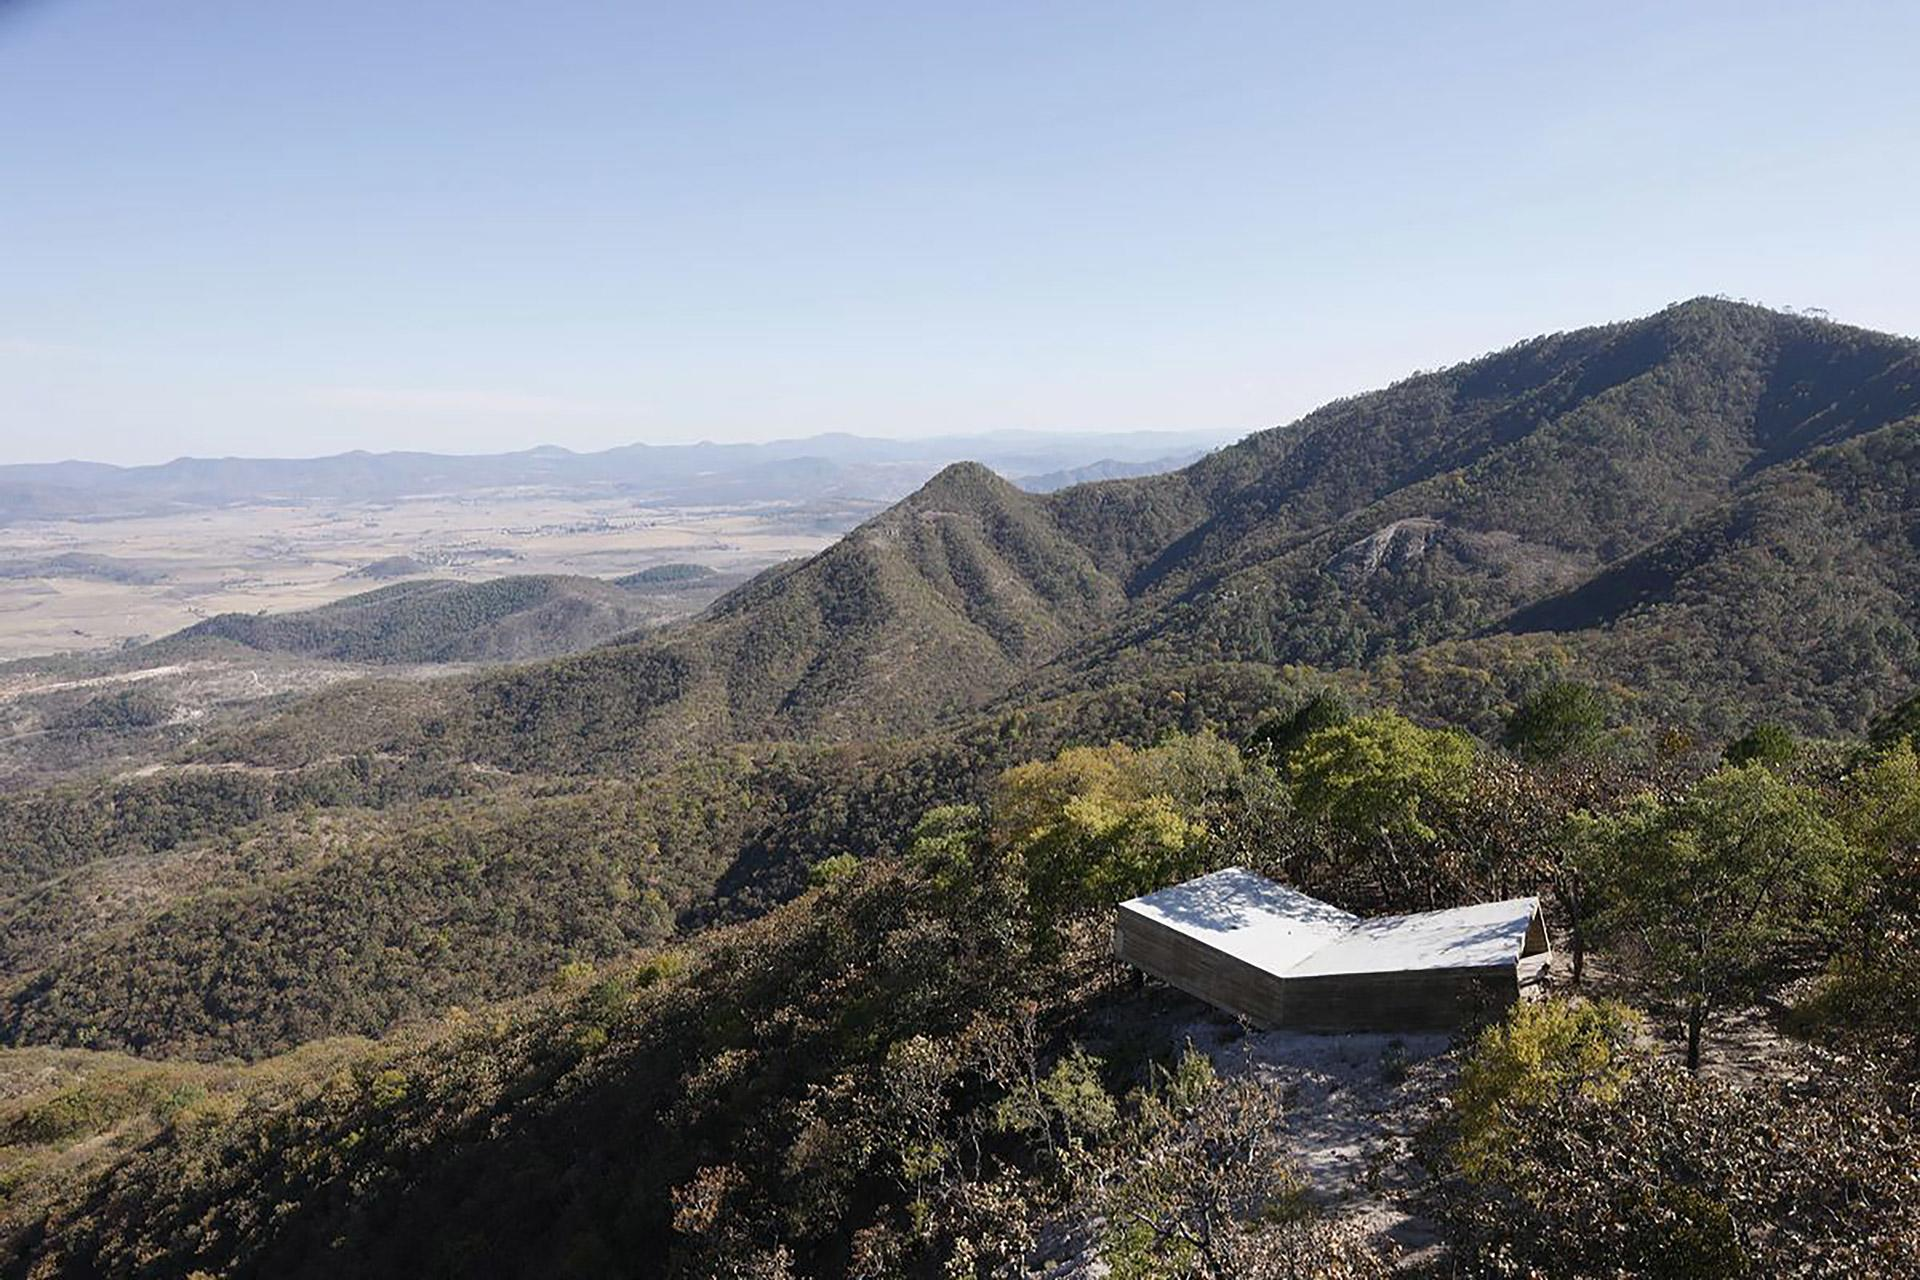 Alejandro-Aravena-Las-Cruces-Pilgrim-Lookout-Point-01